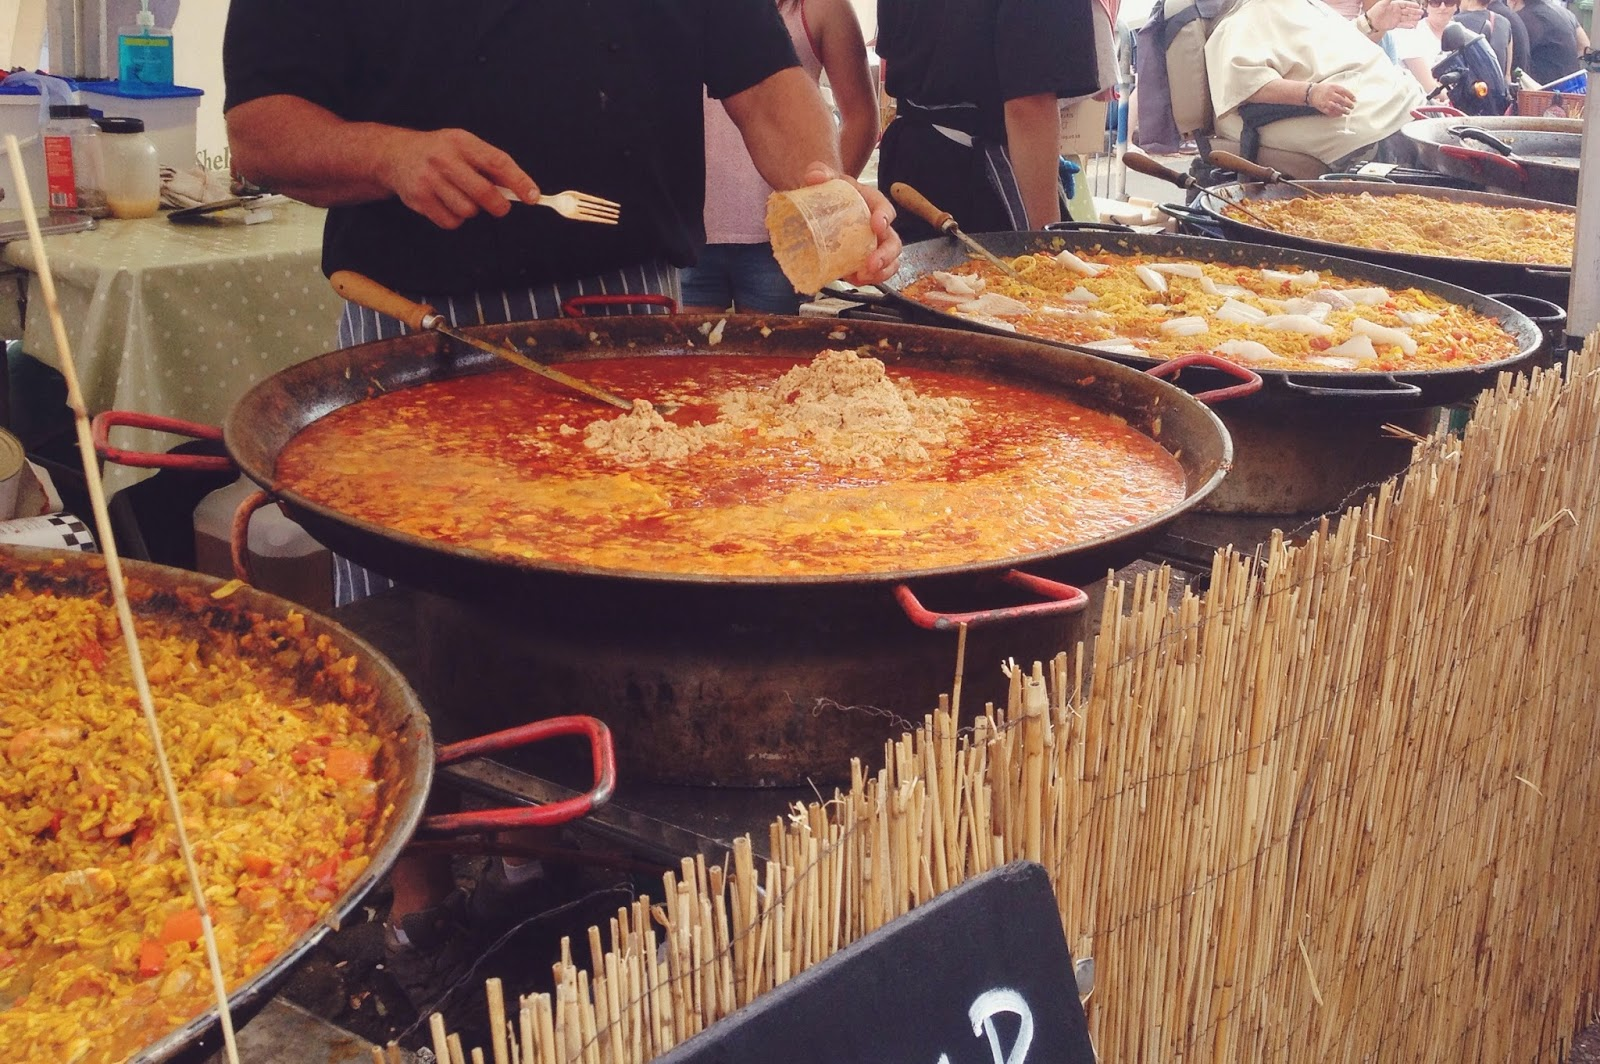 Dorset Seafood Festival, food blog, lifestyle blog, food festival, paella